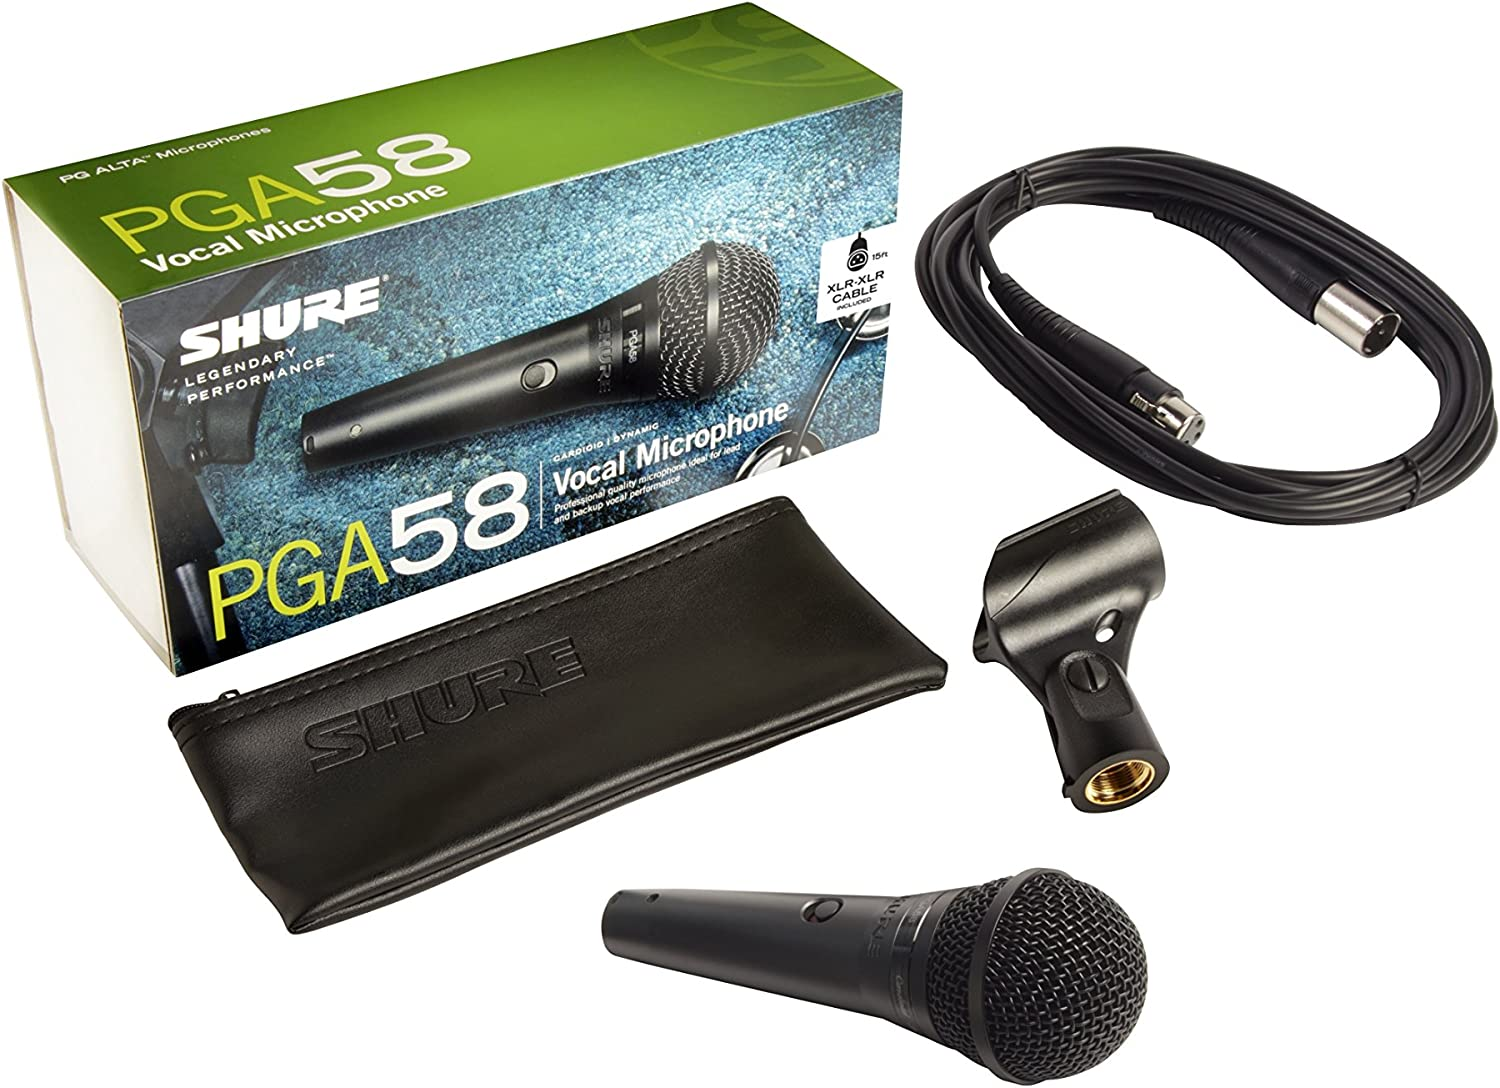 PGA58BTS Shure PG ALTA Caridoid Dynamic Vocal Microphone with XLR-XLR Cable and Tripod Stand